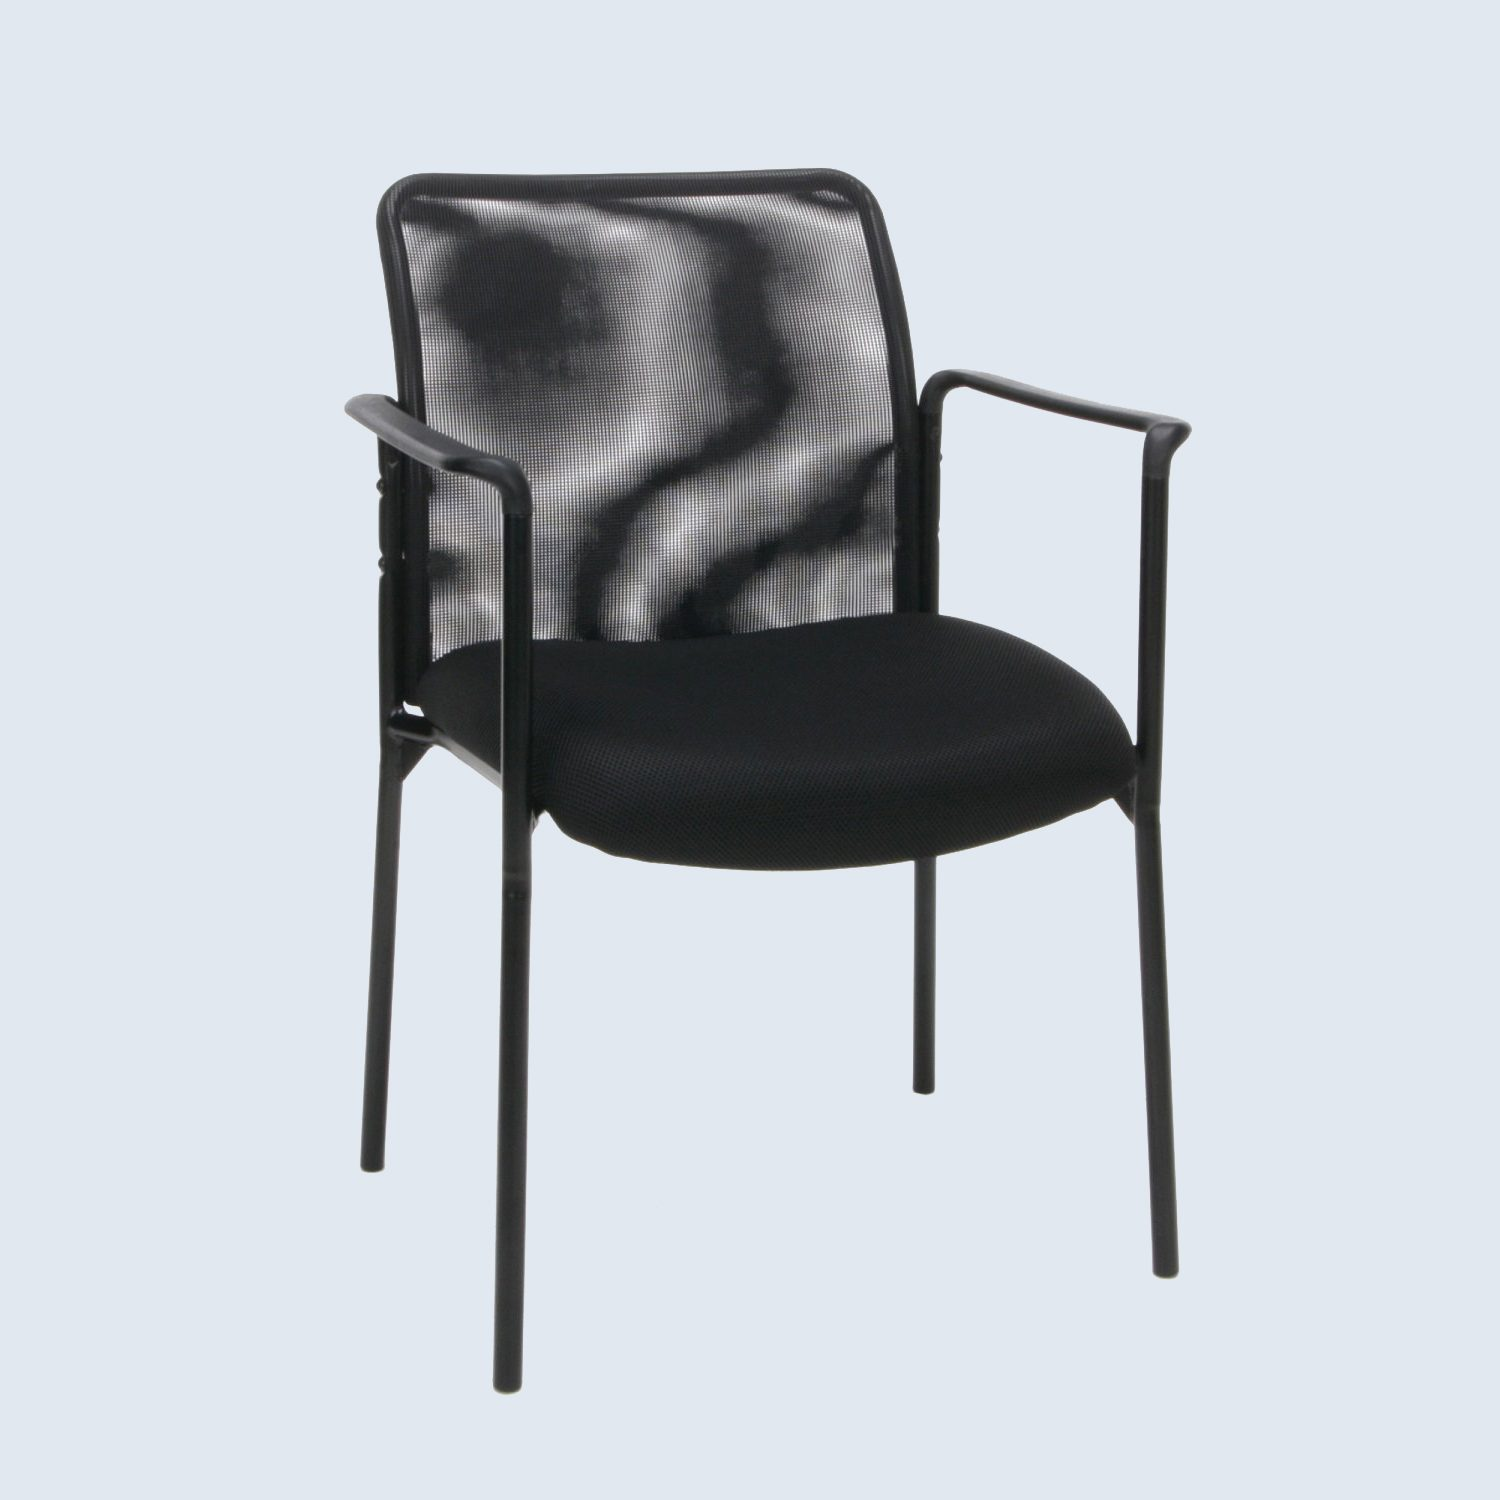 OFM upholstered side chair